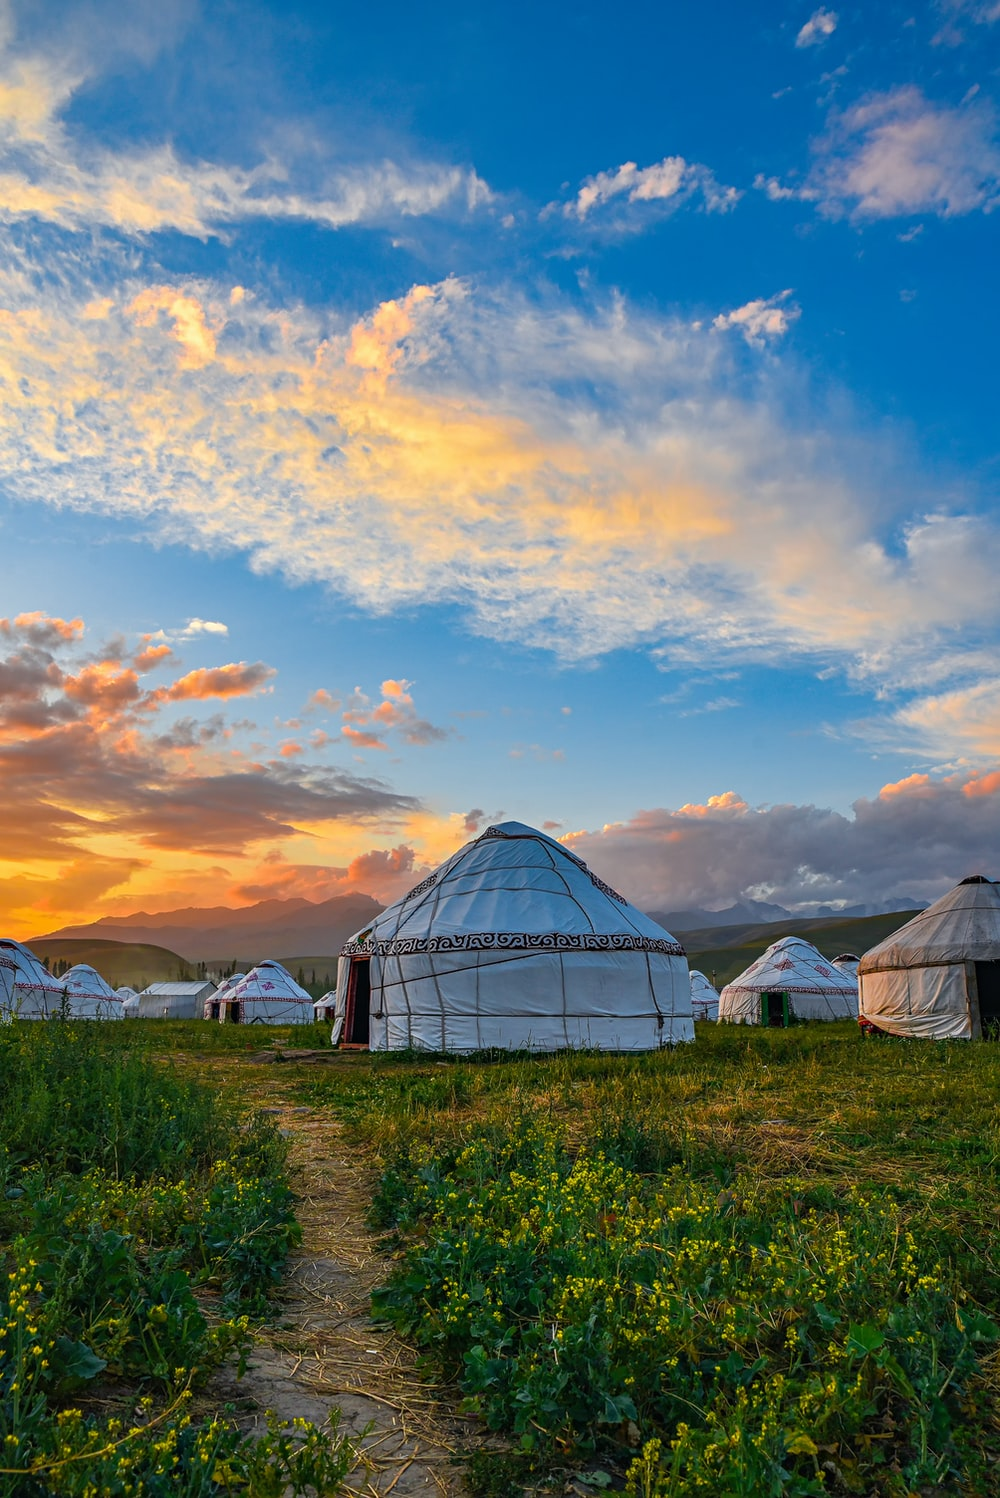 tents on green grass under cloudy sky